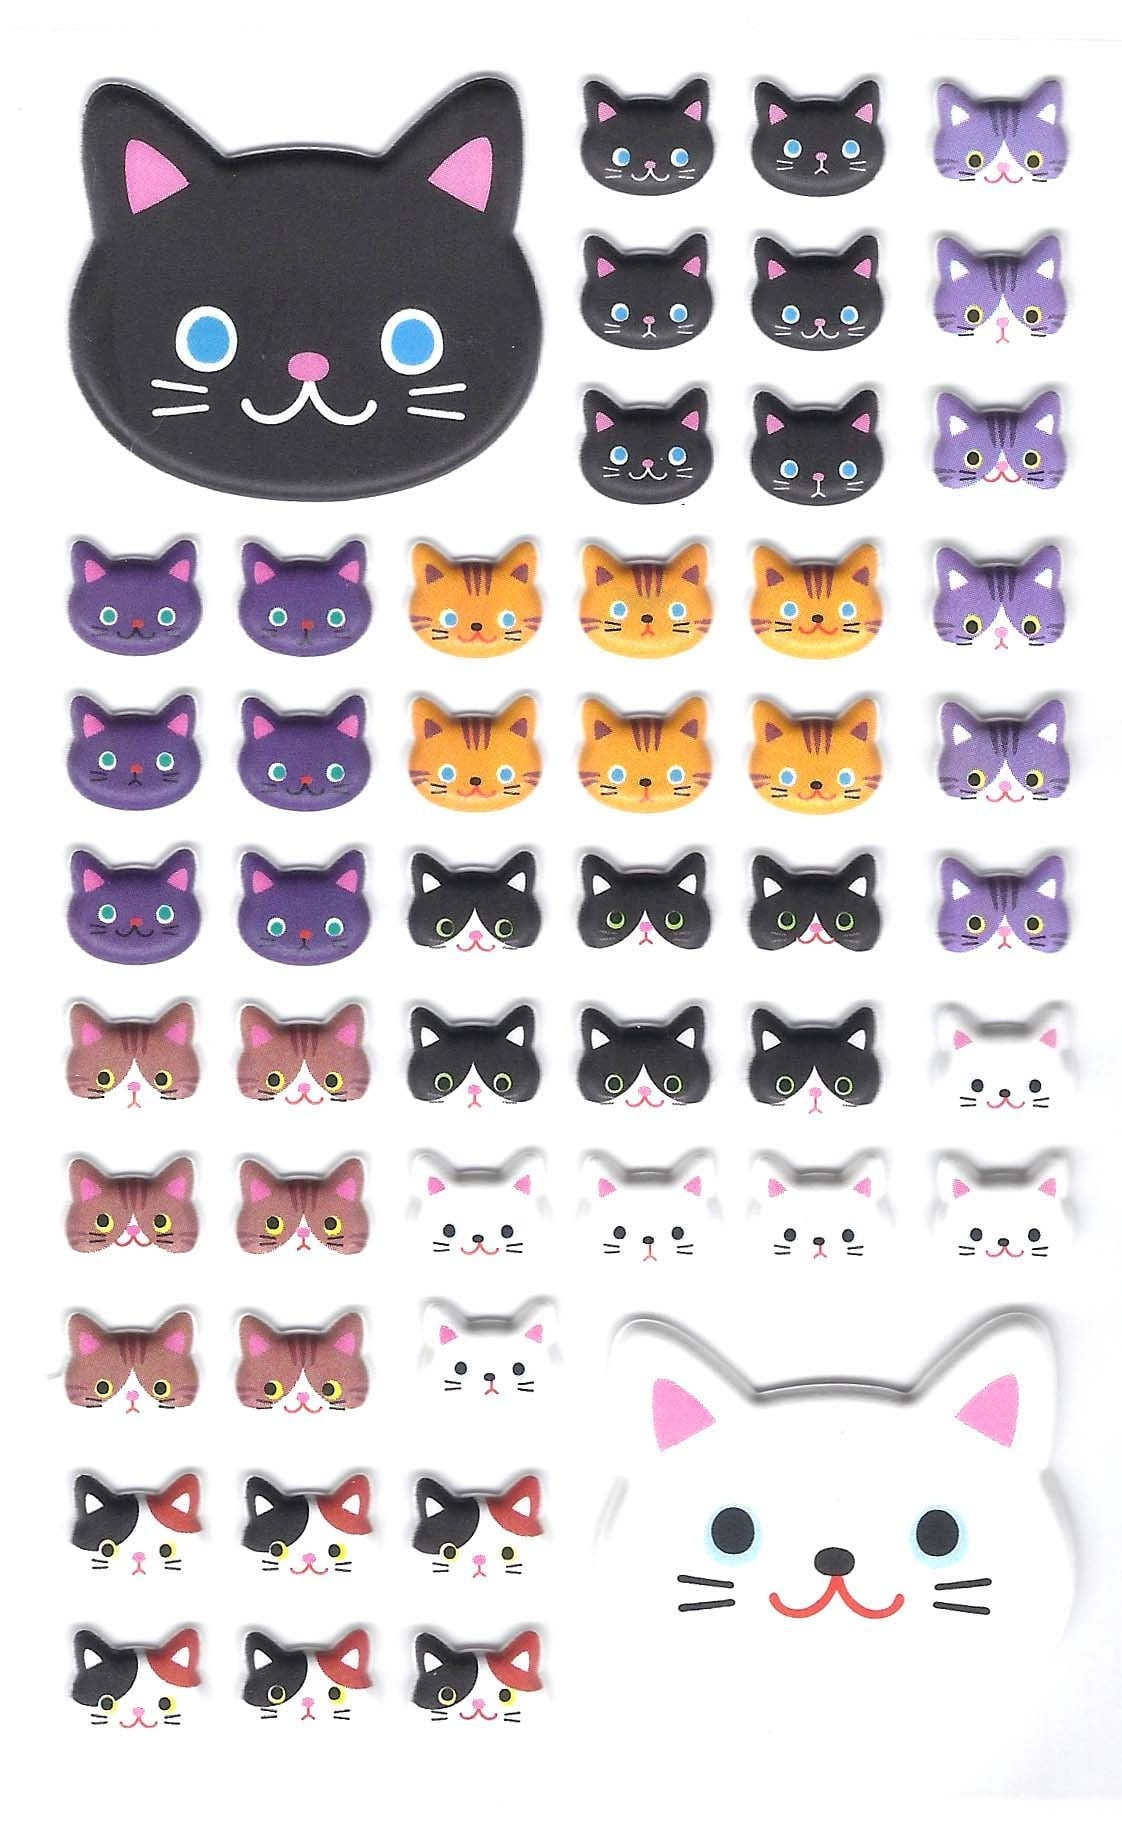 Kitty Cat Animal Themed Puffy Stickers for Scrapbooking and Decorating